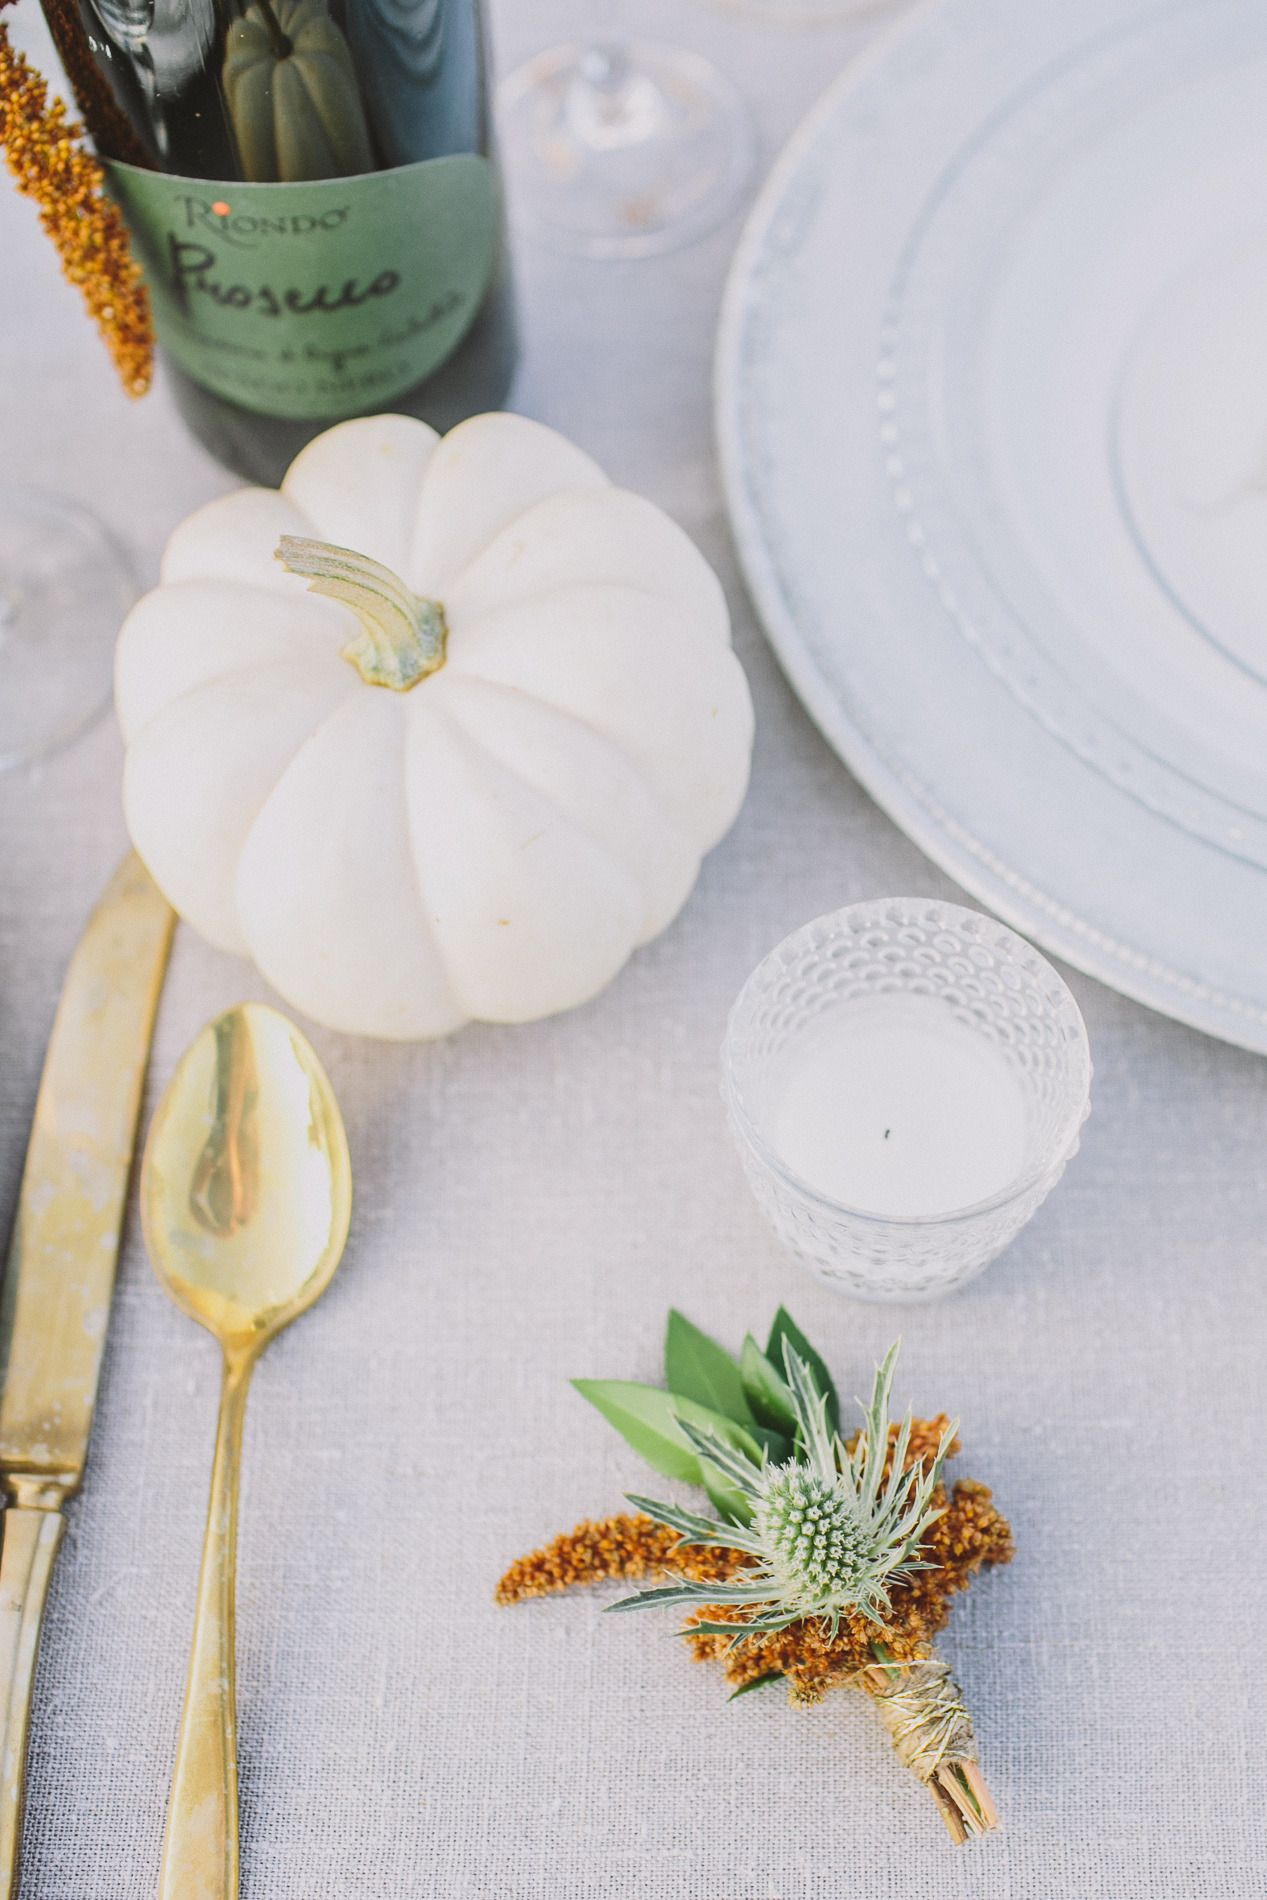 Pumpkin place setting | Autumn Inspiration Shoot from Anna Delores Photography  Read more - http://www.stylemepretty.com/california-weddings/2013/10/31/autumn-inspiration-shoot-from-anna-delores-photography/